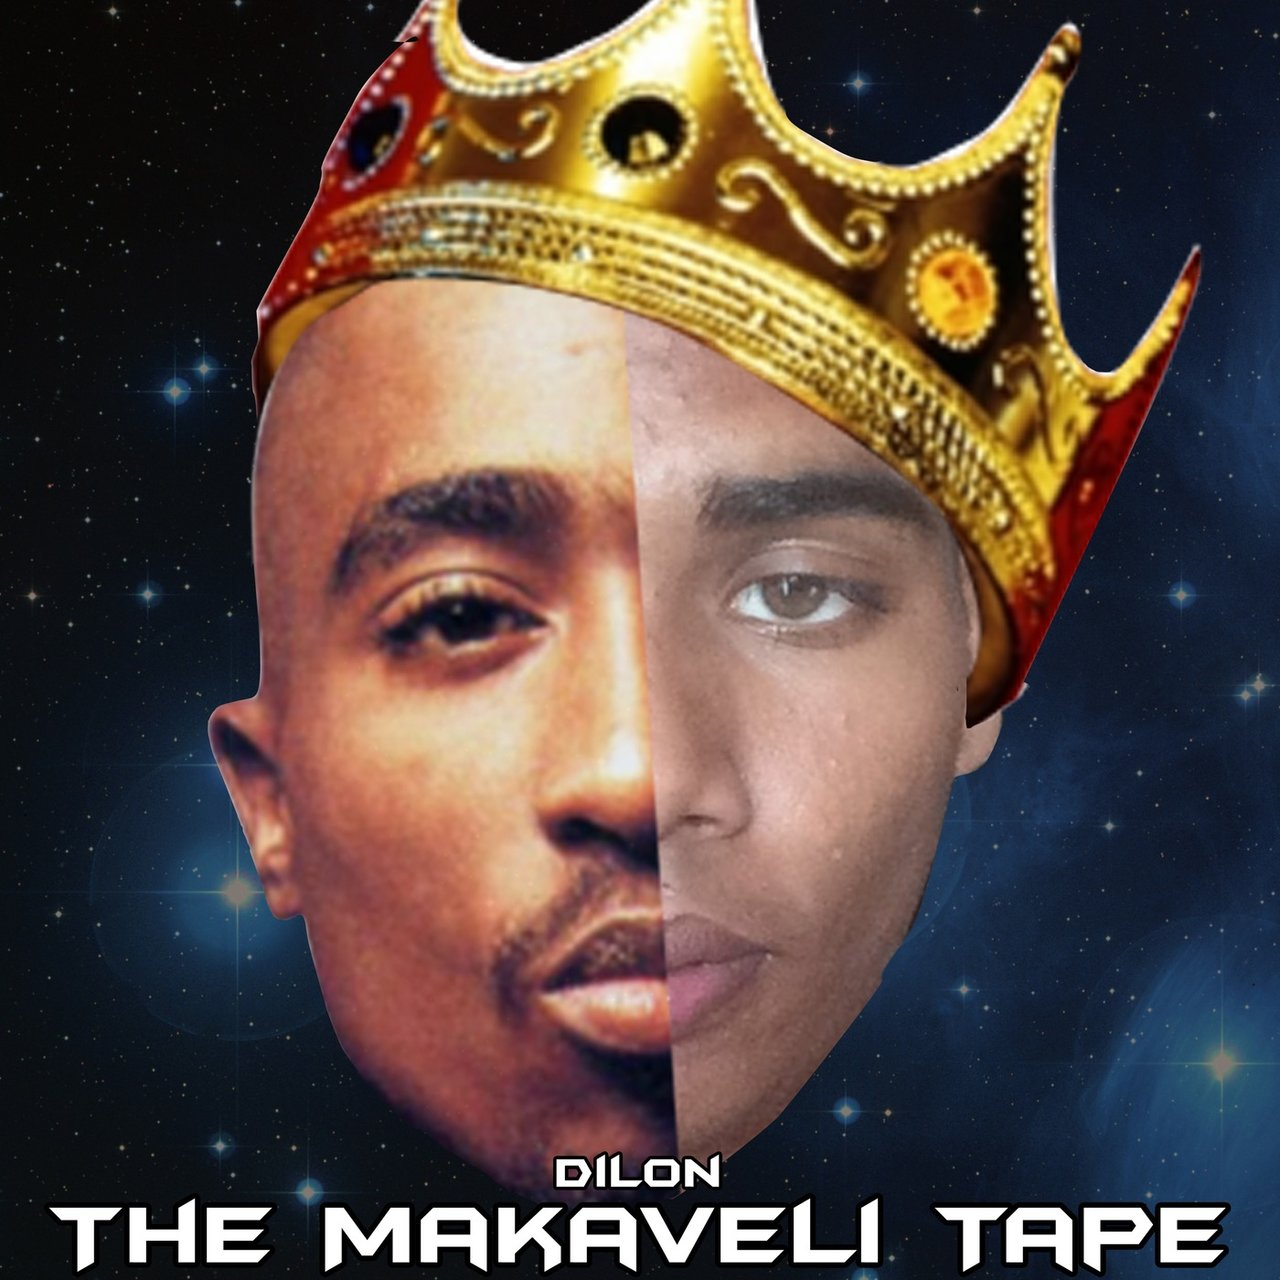 The Makaveli Tape